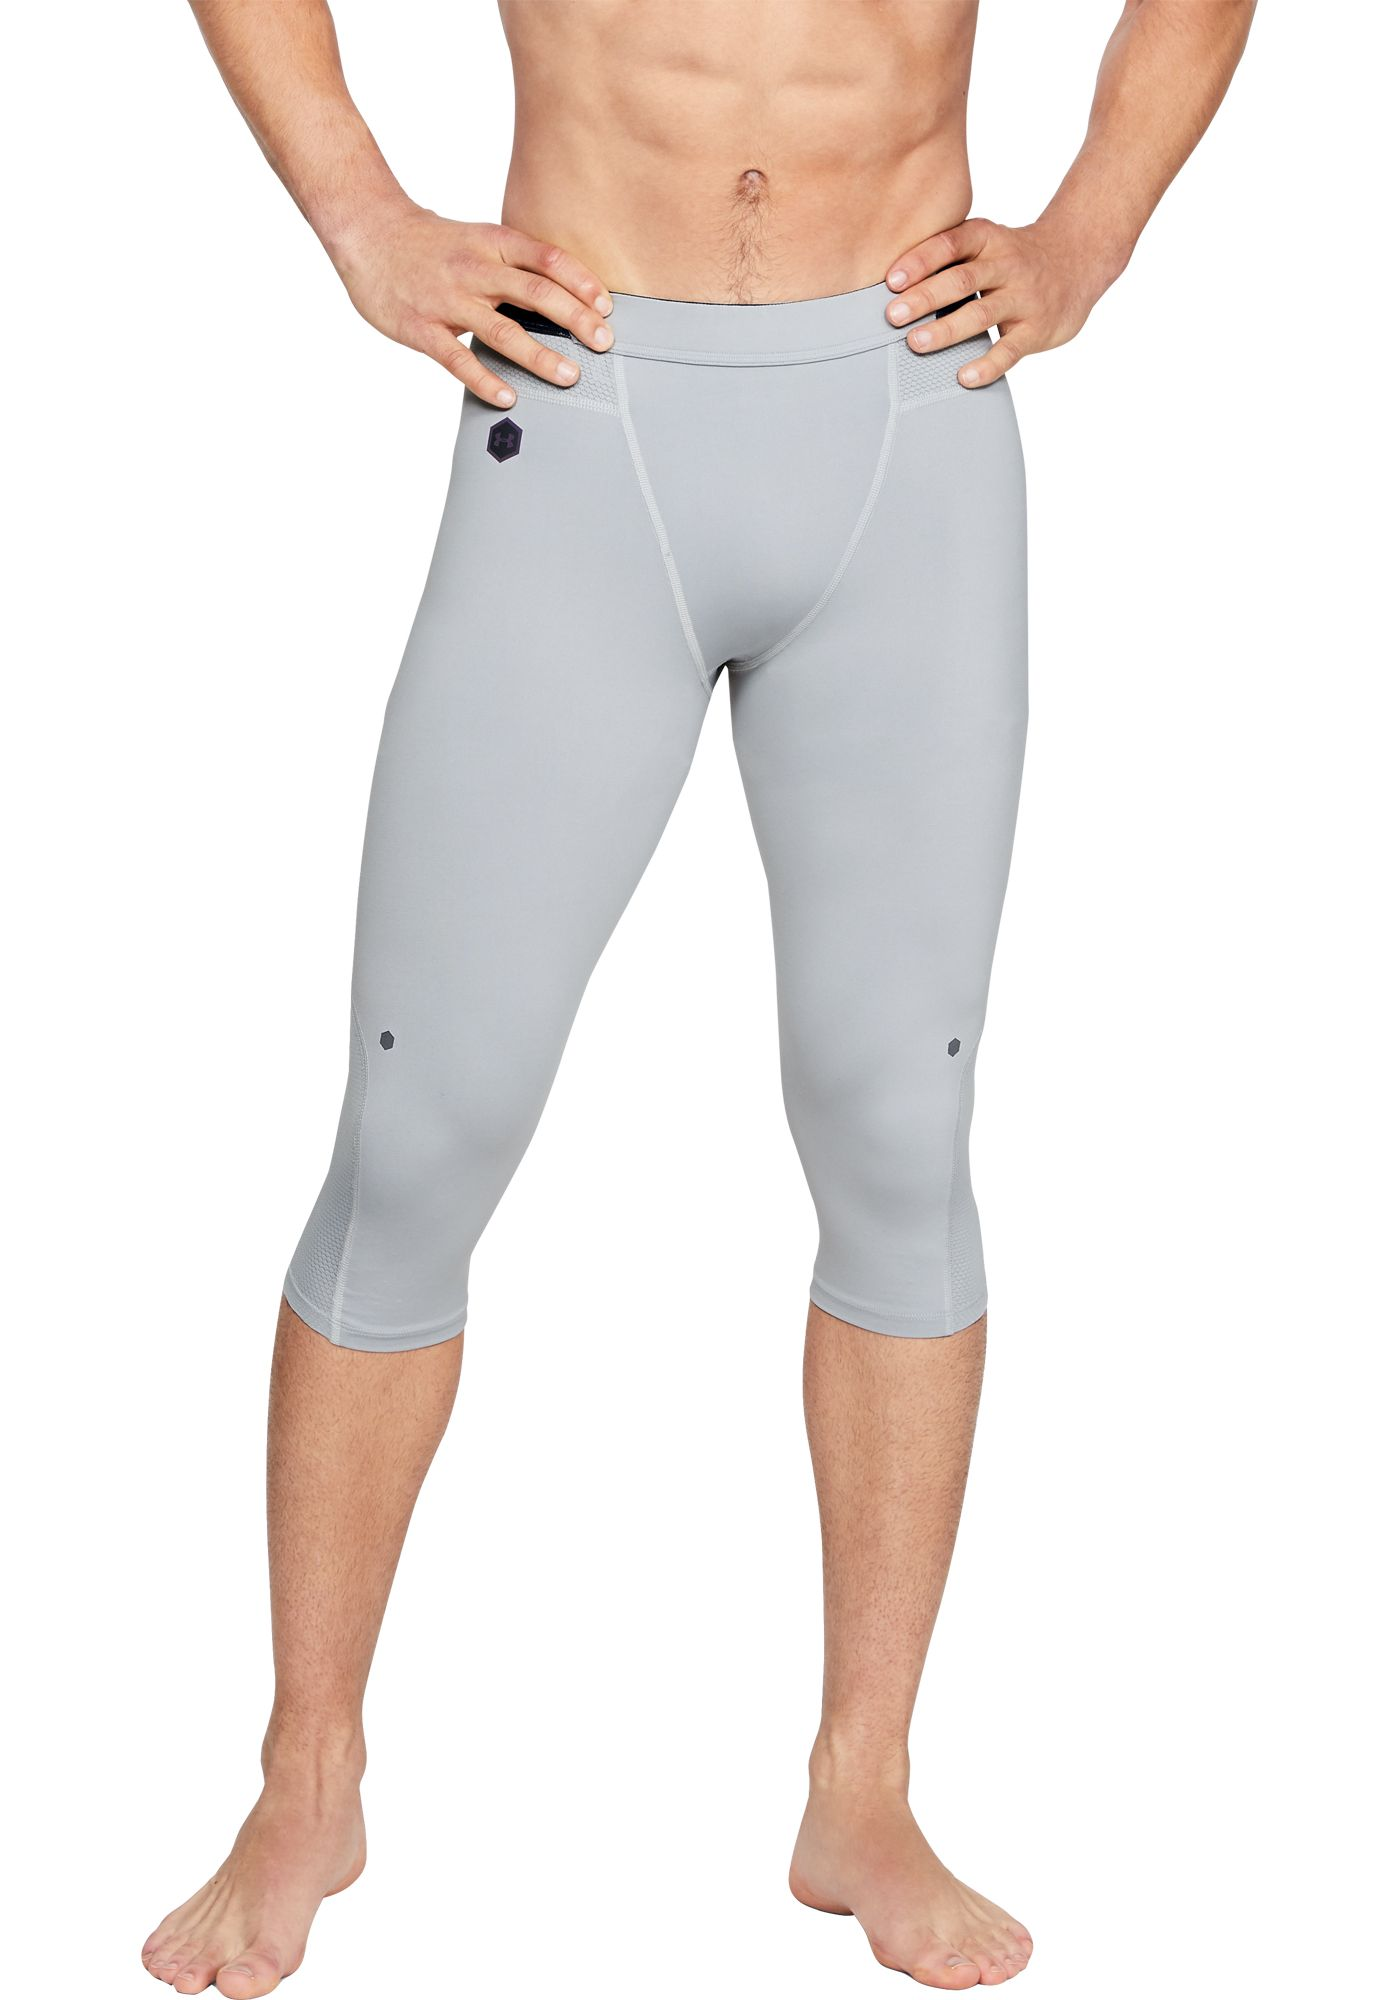 Under Armour Men's RUSH Select Basketball Knee Tights